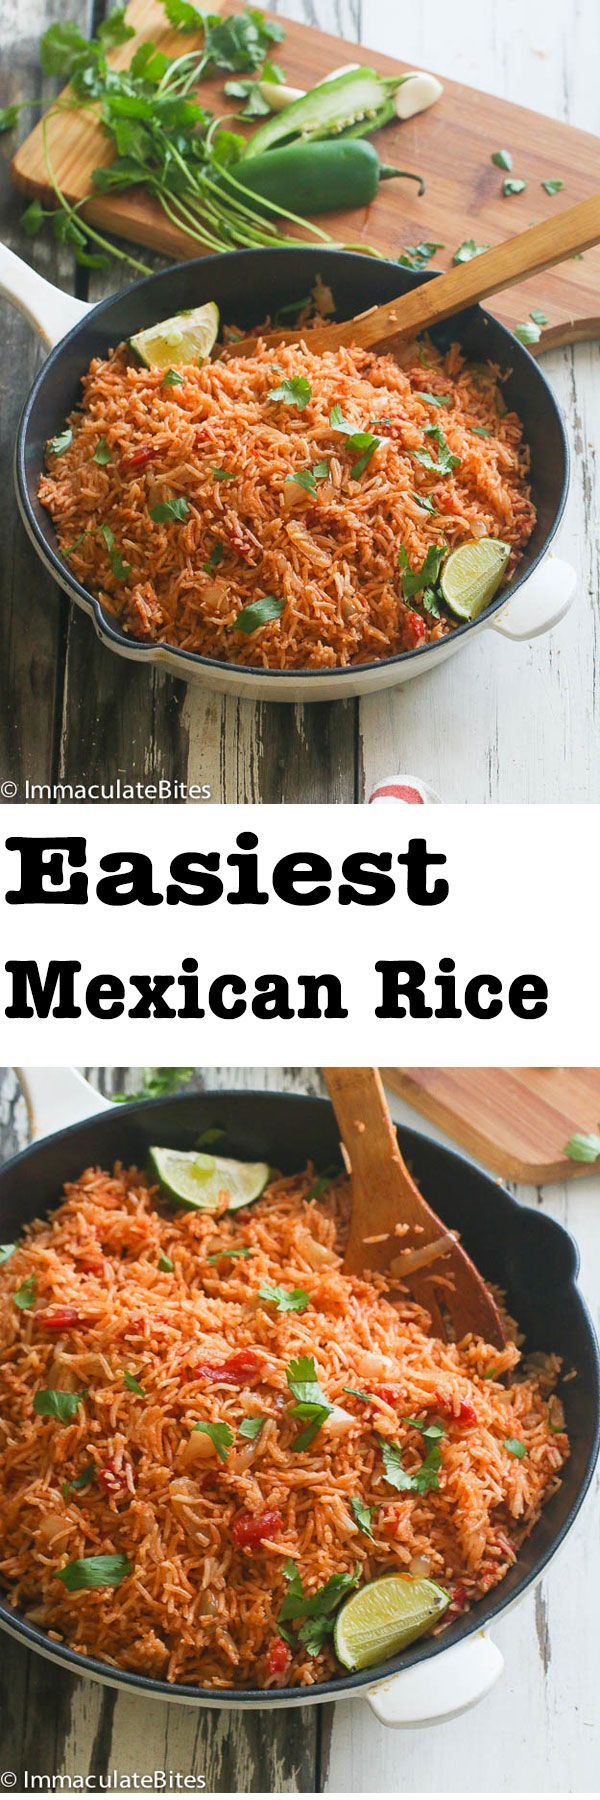 Best 25+ Mexican rice dishes ideas that you will like on Pinterest ...